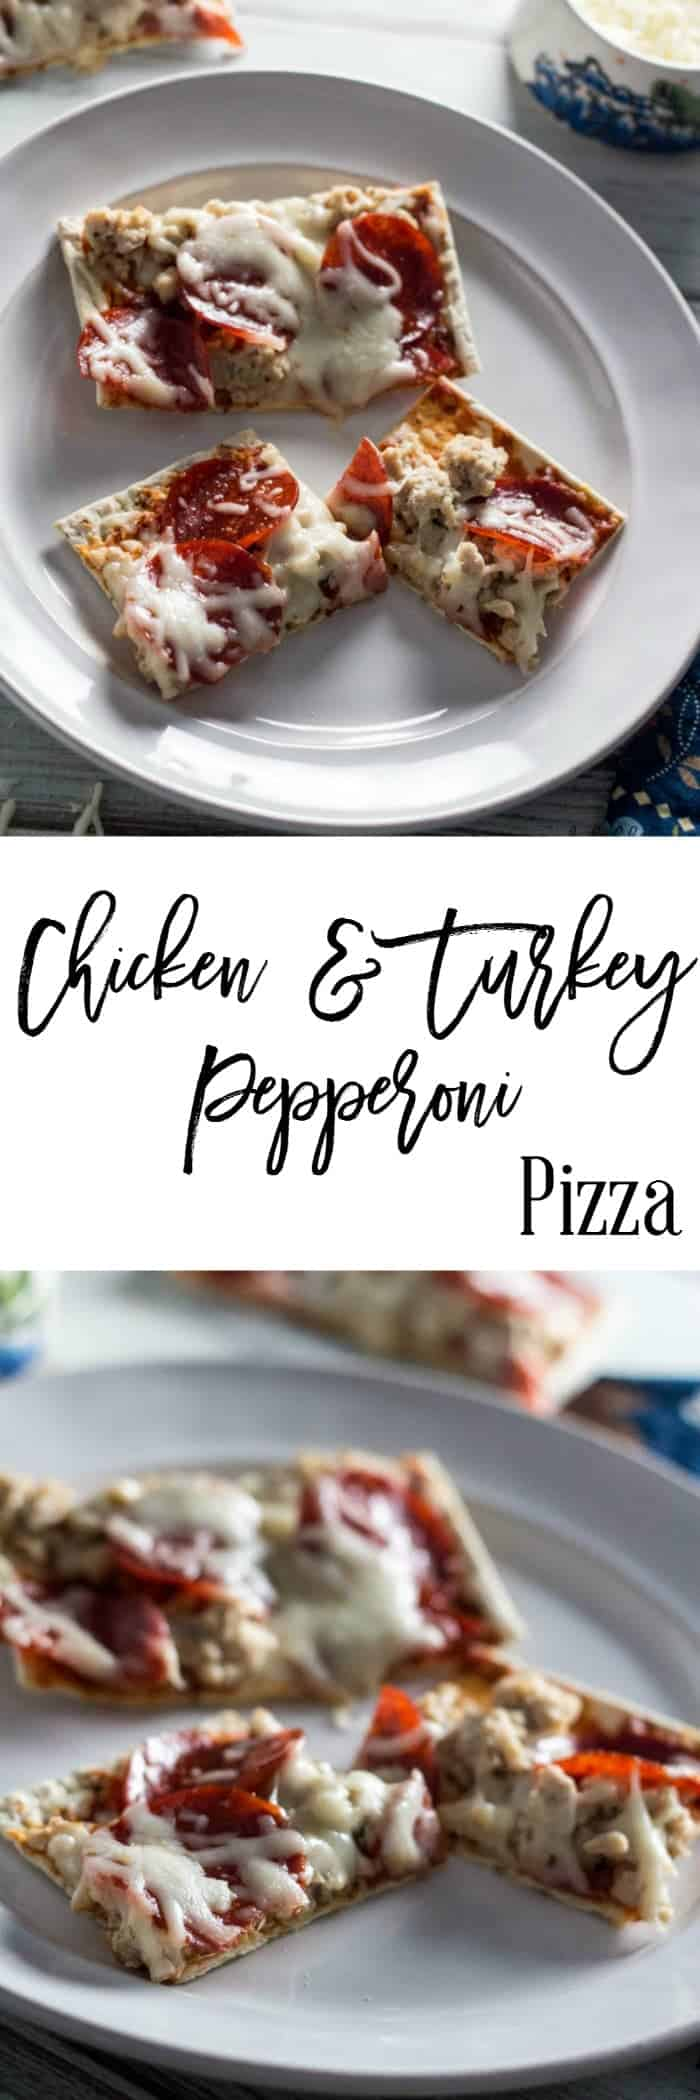 Chicken and Turkey Pepperoni Pizza